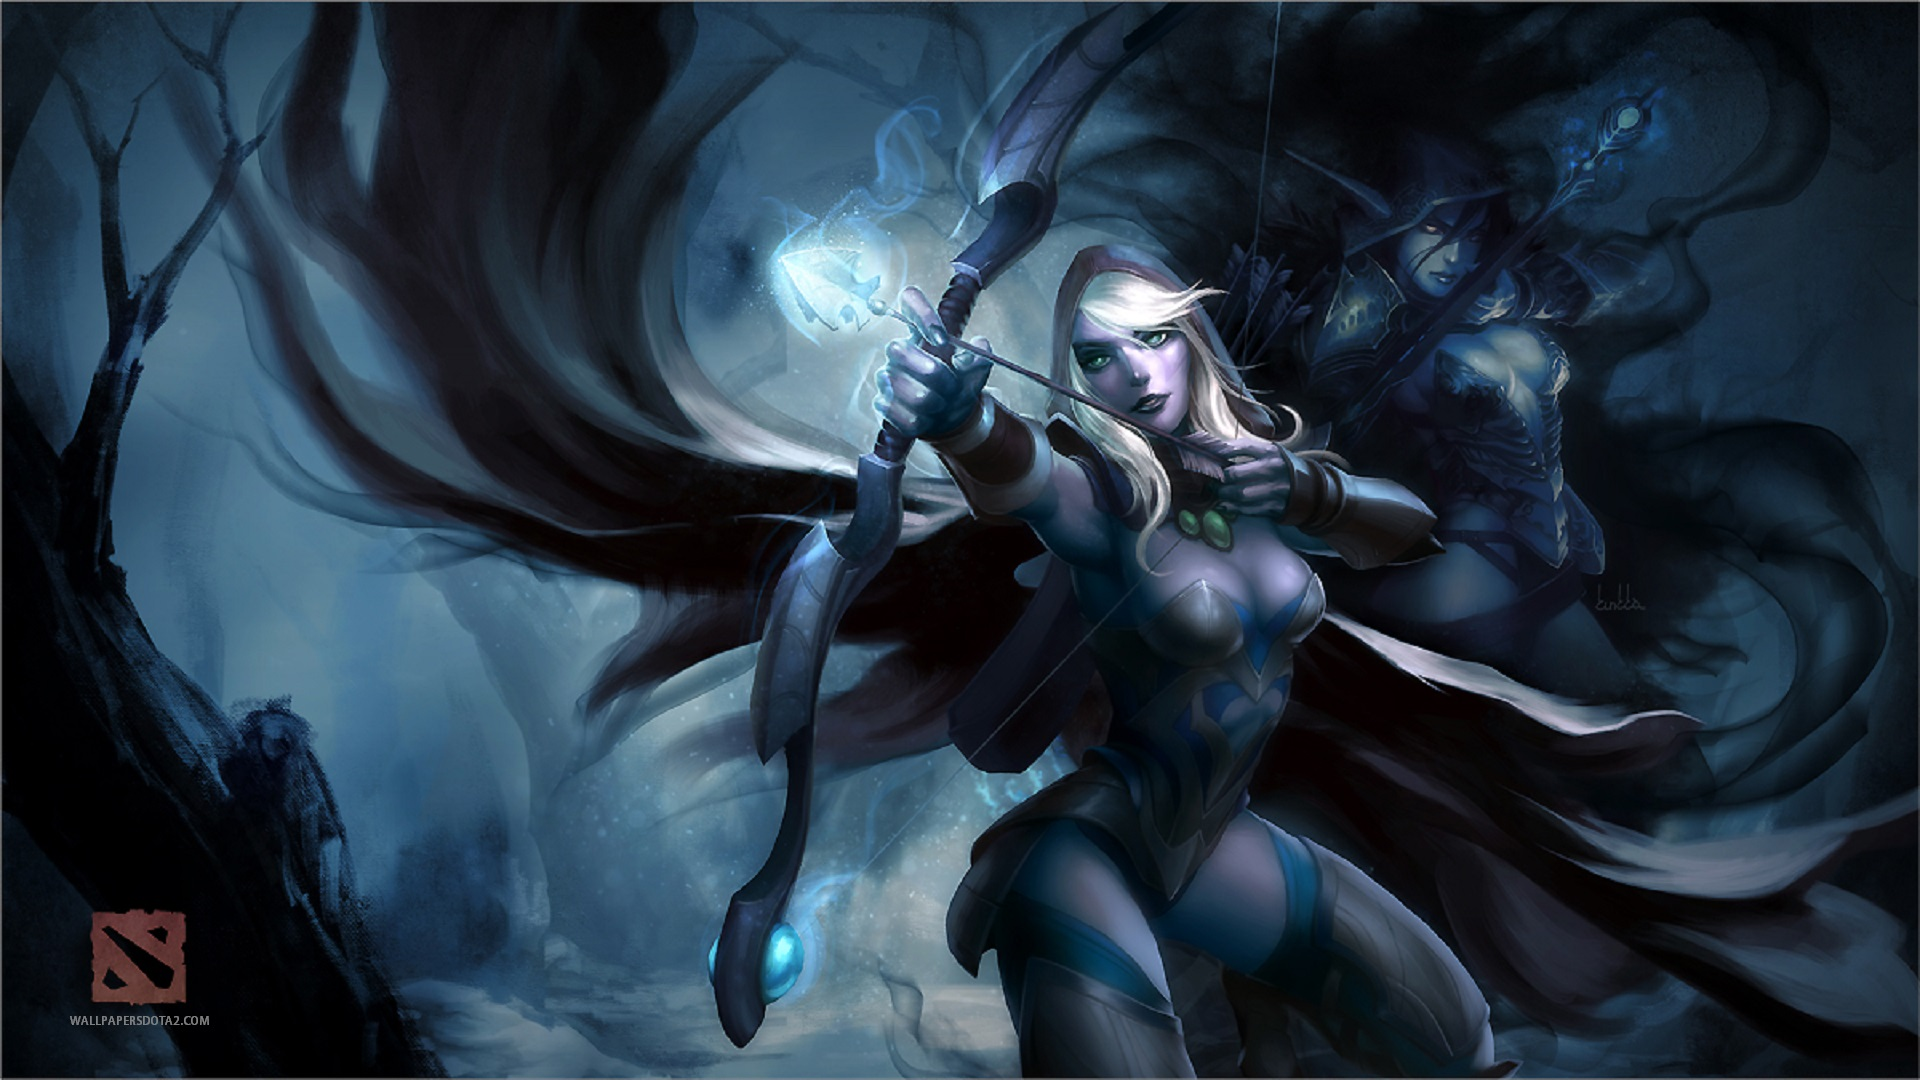 Drow Ranger computer desktop wallpapers Dota 2